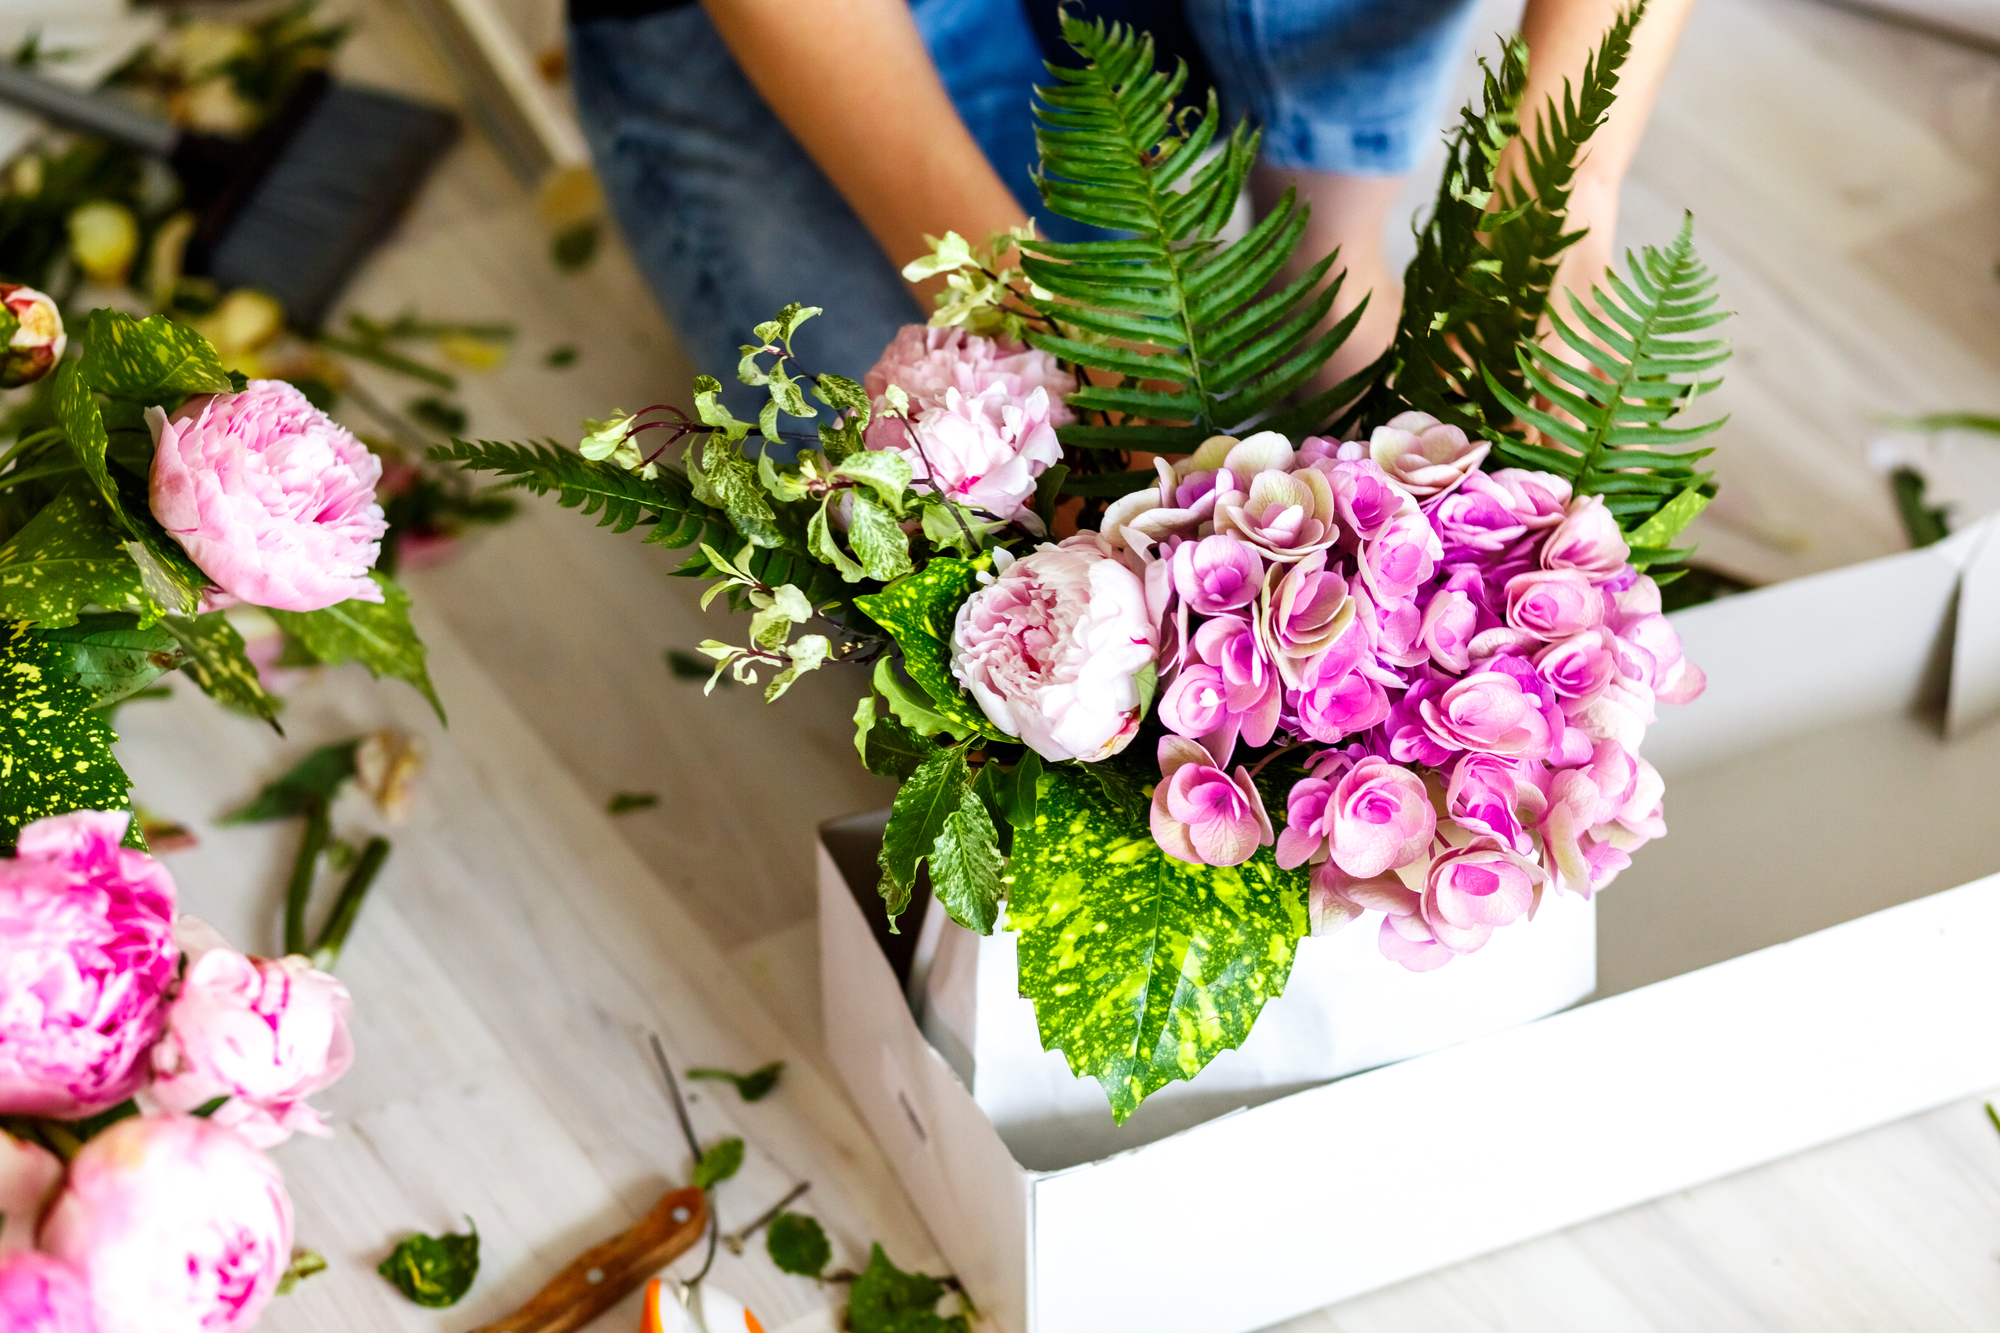 Florist making a bouguet of peonies